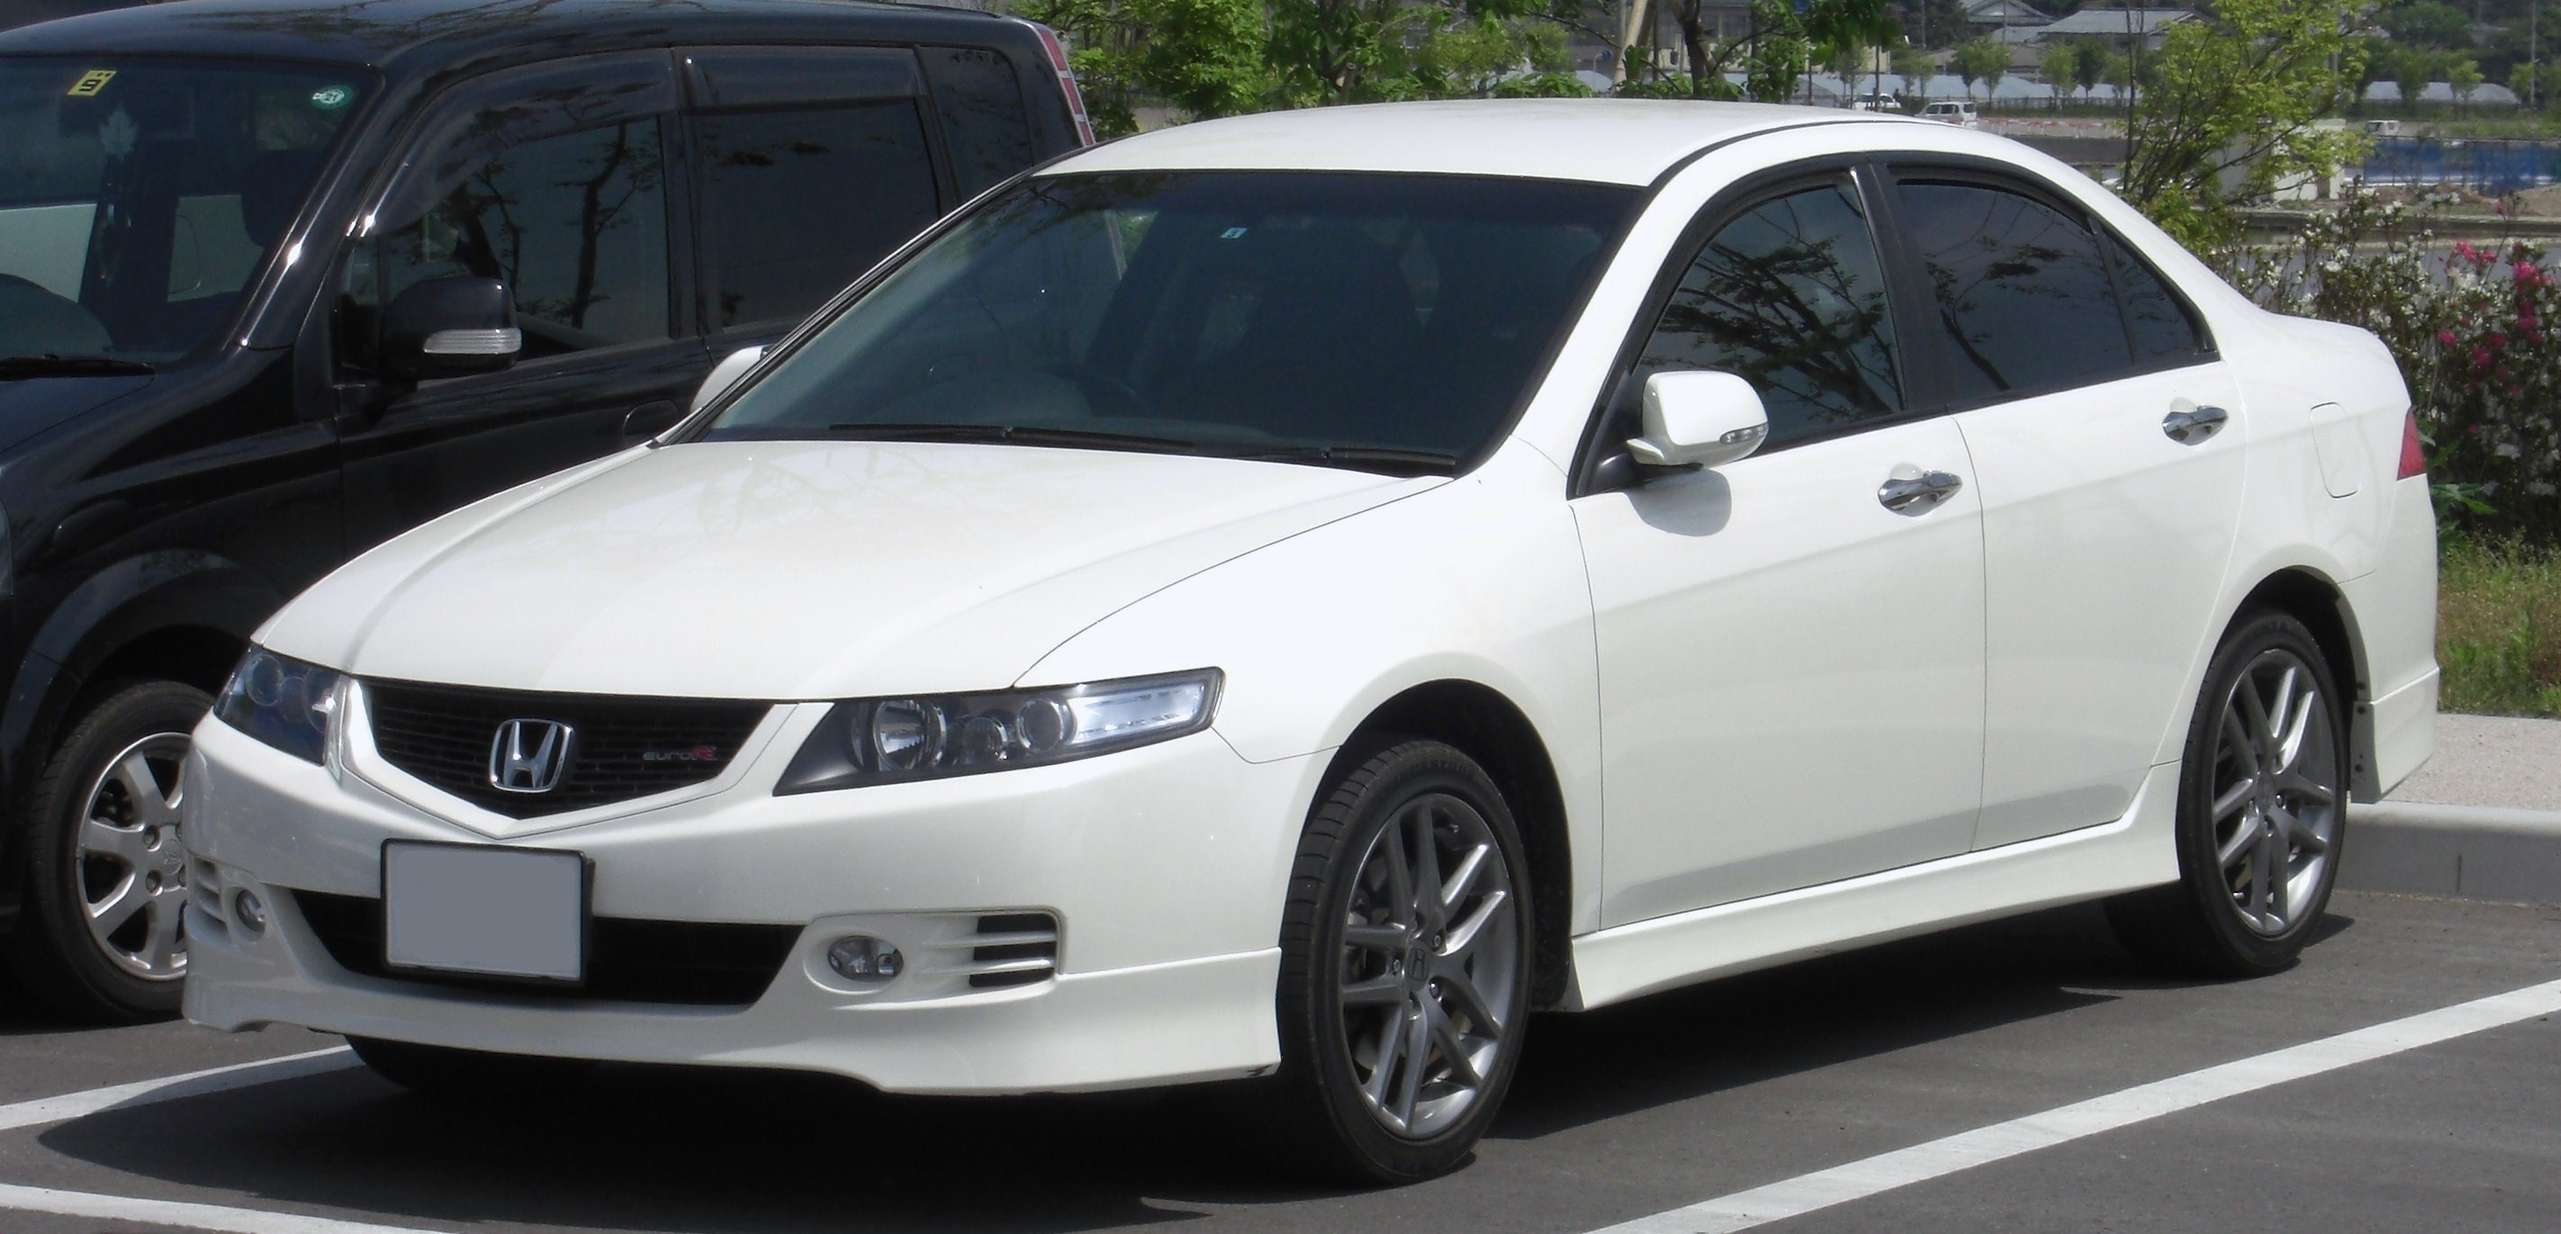 Honda Accord Euro #8704834